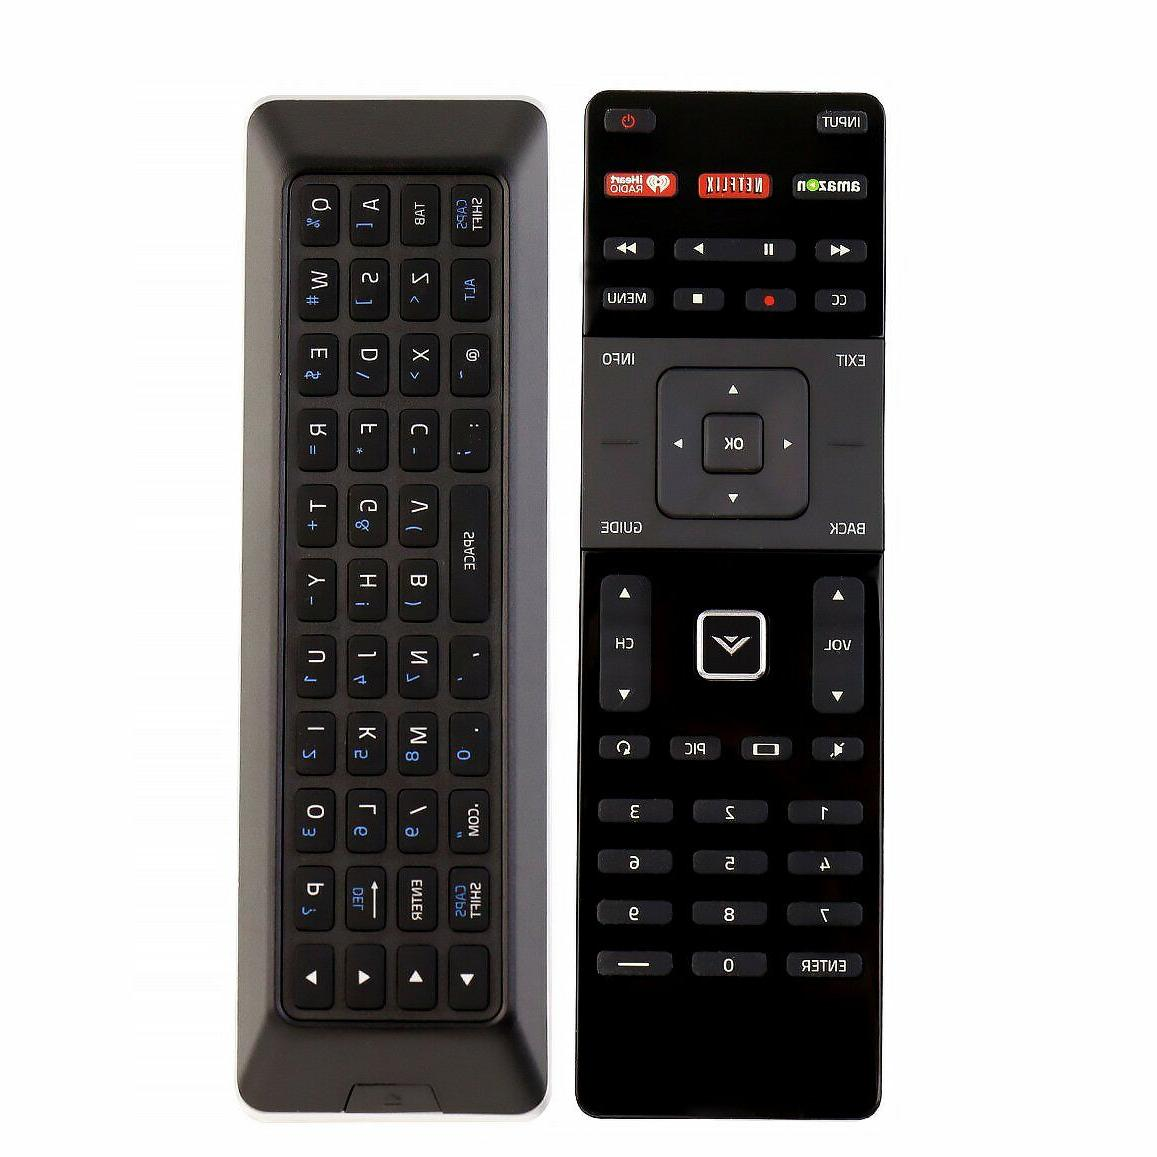 New Origina VIZIO Smart XRT500 LED remote Control with QWERT